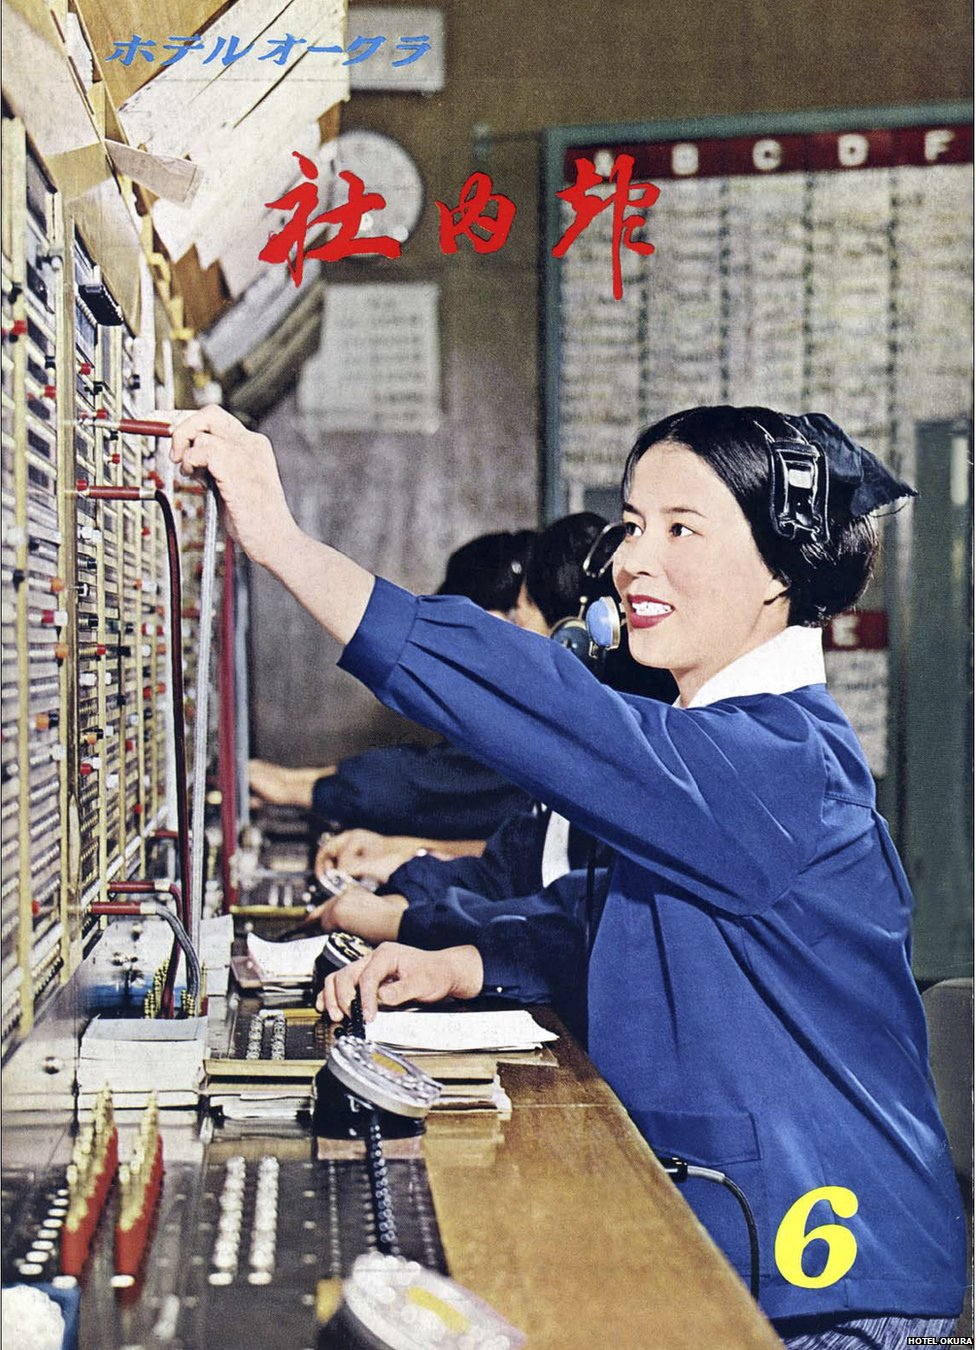 Picture of the telephone exchange in Hotel Okura in the 1960s